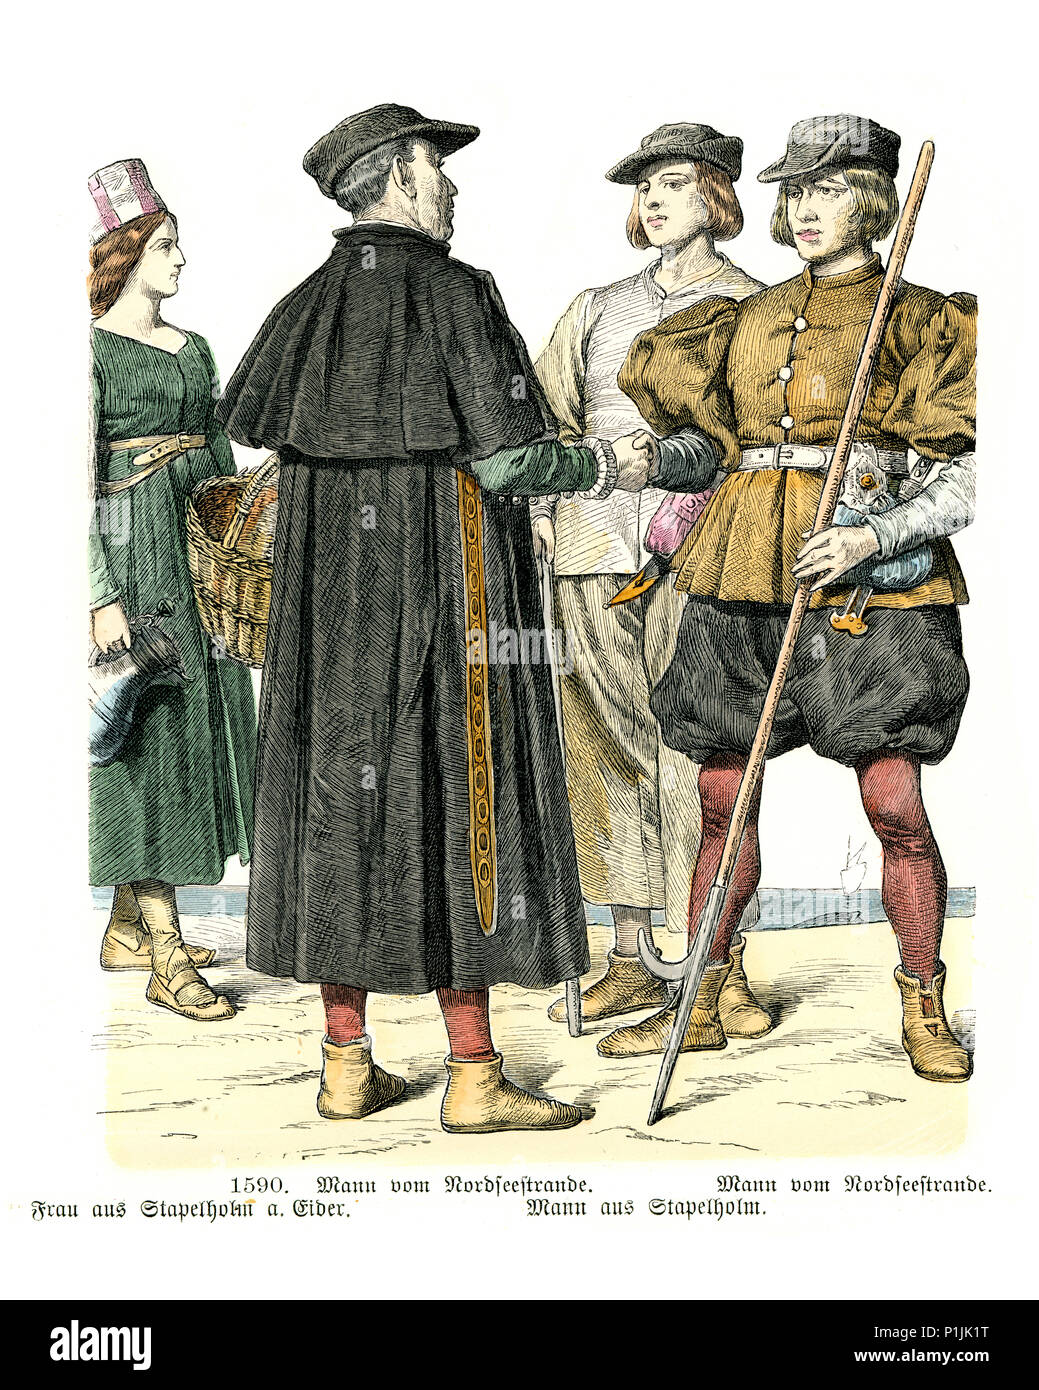 Vintage engraving of History of Fashion, Costumes of Germany 16th Century. Man of Nordfriesland, woman of Stapelholm, Schleswig-Holstein - Stock Image